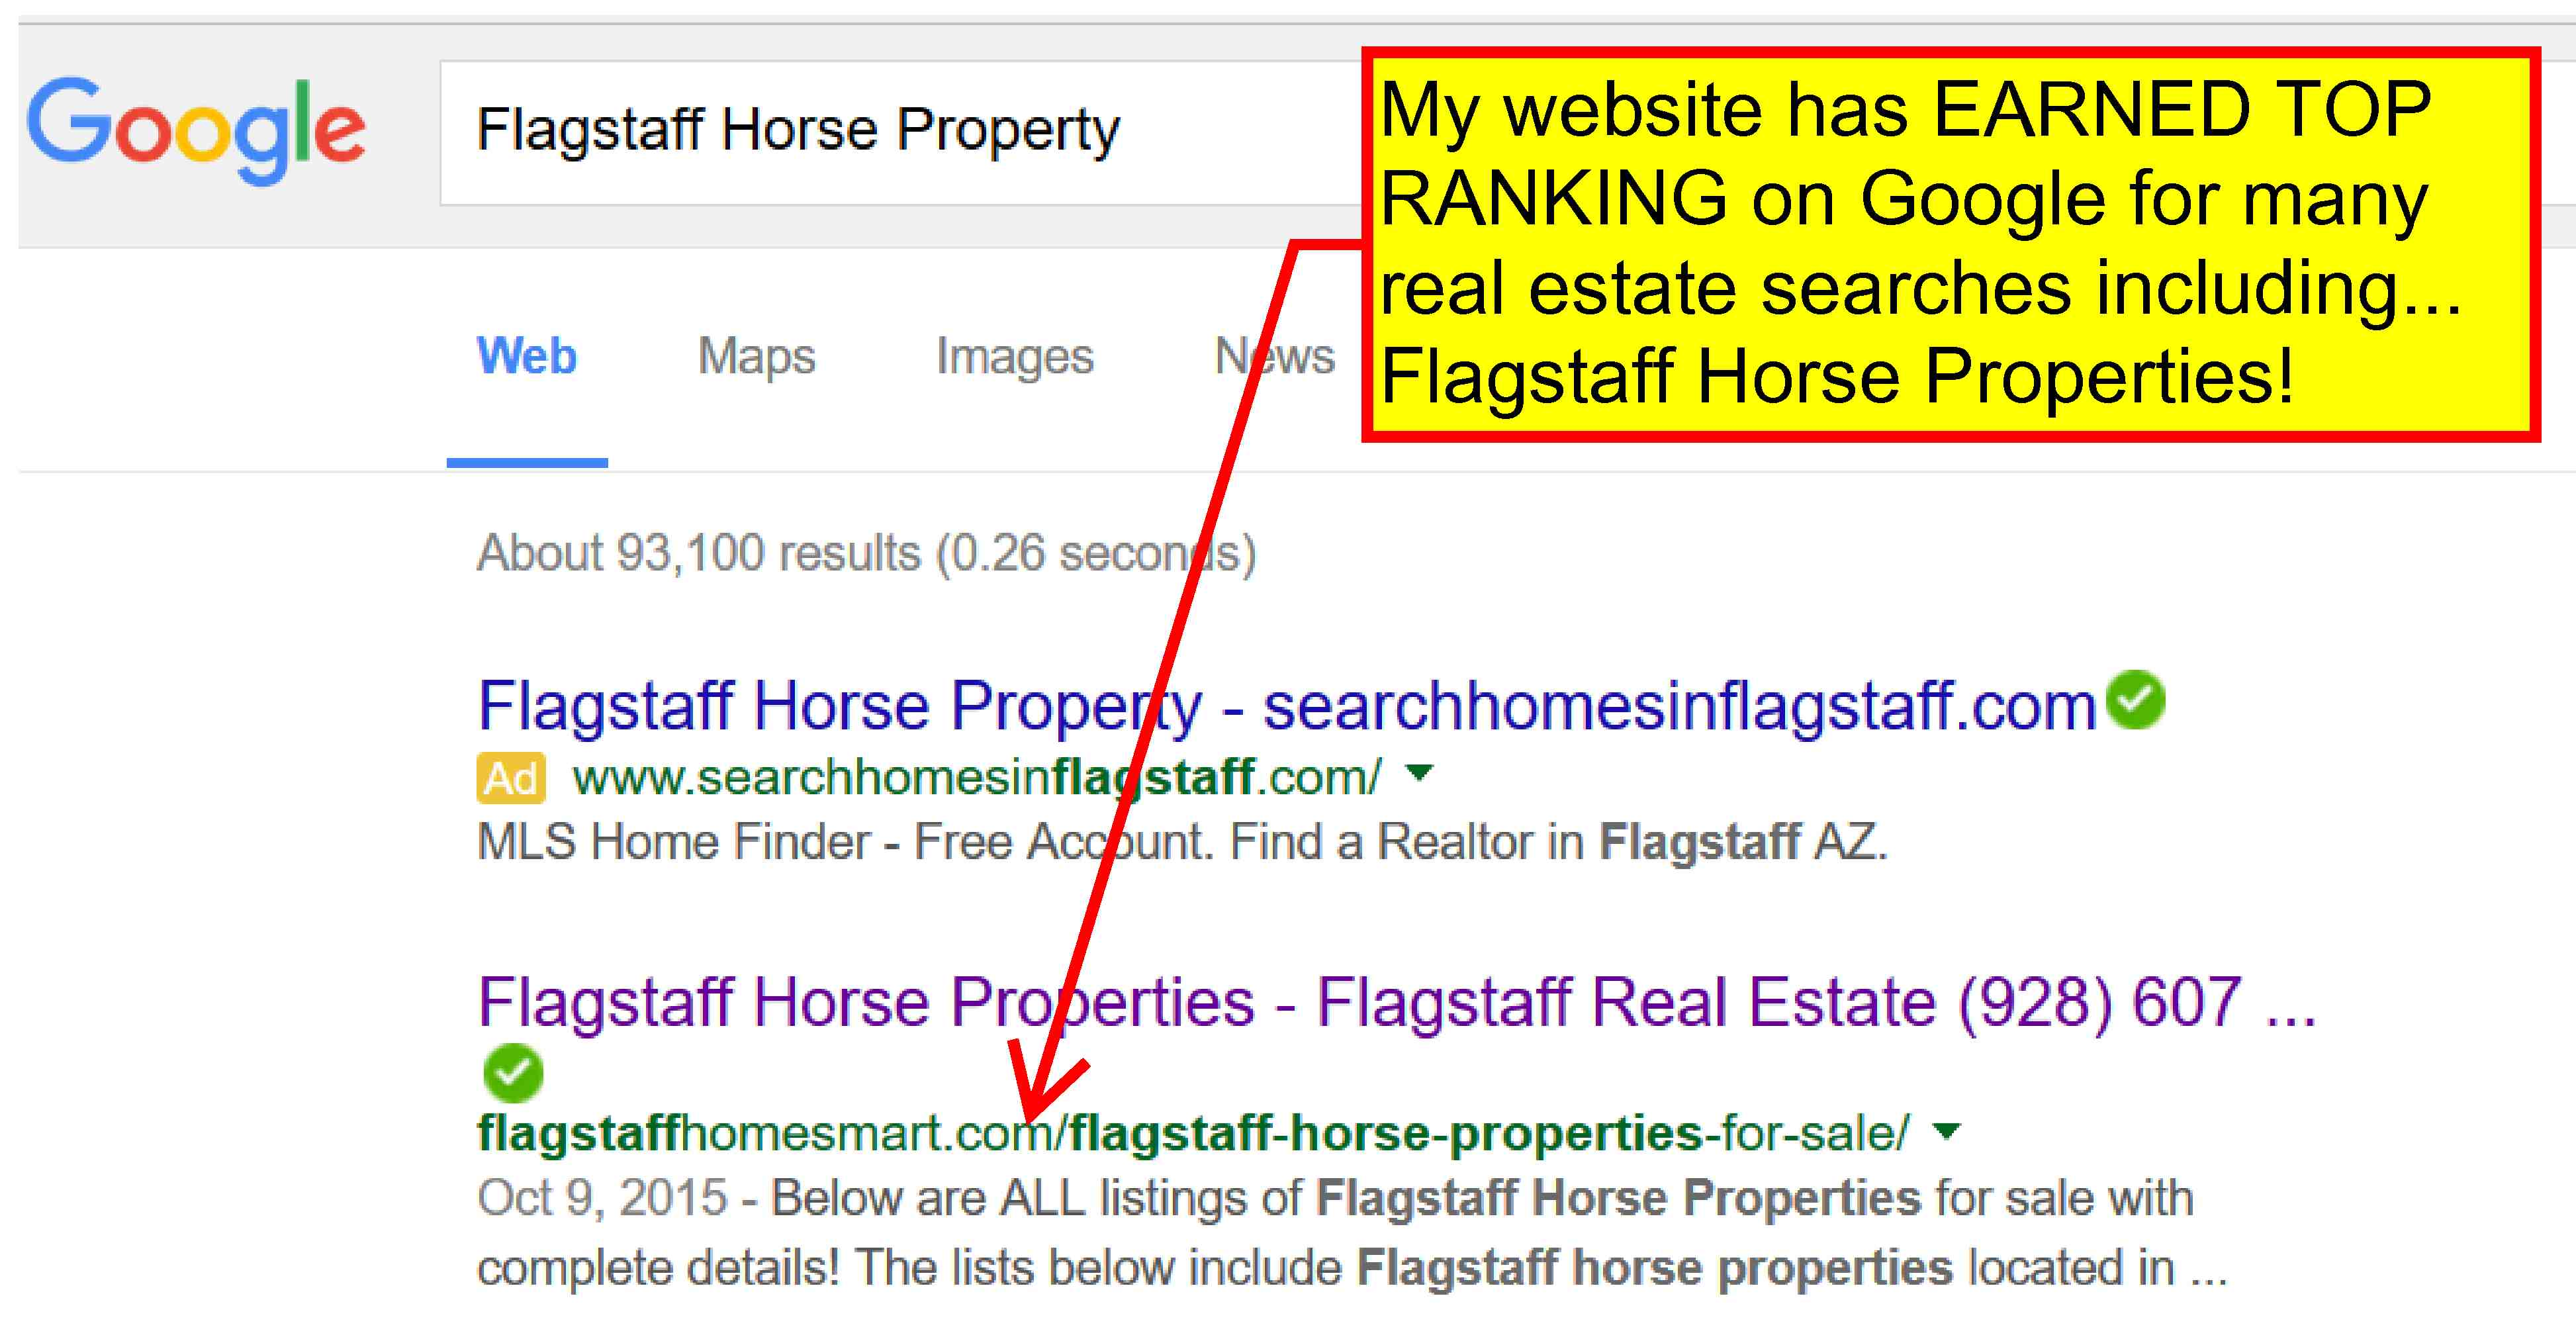 My website has EARNED TOP RANKING on Google for many real estate properties searches.